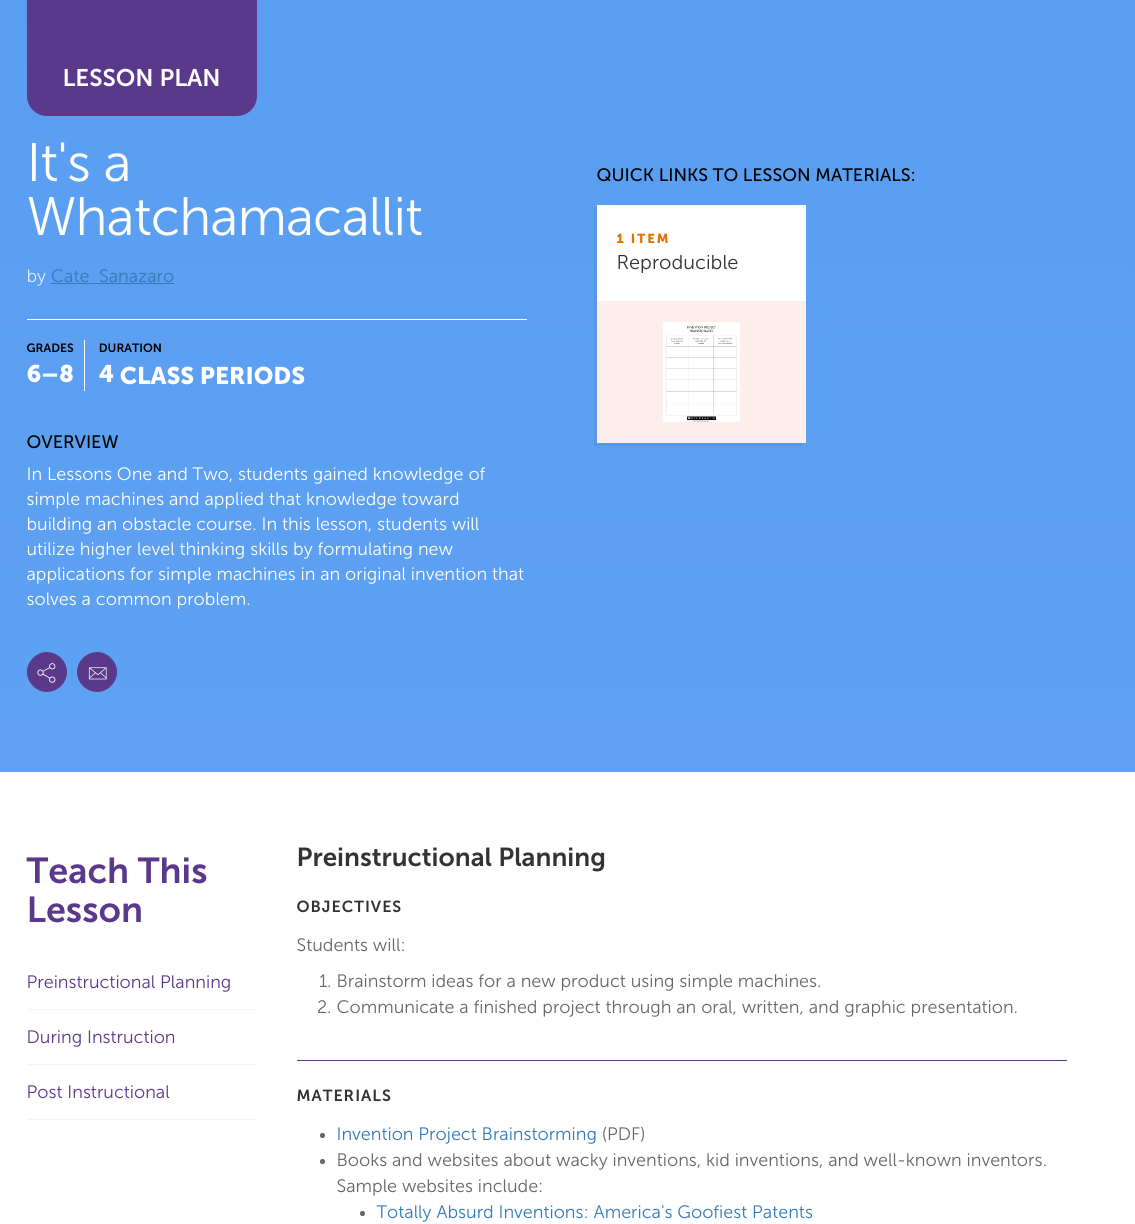 It's a Whatchamacallit Lesson Plan